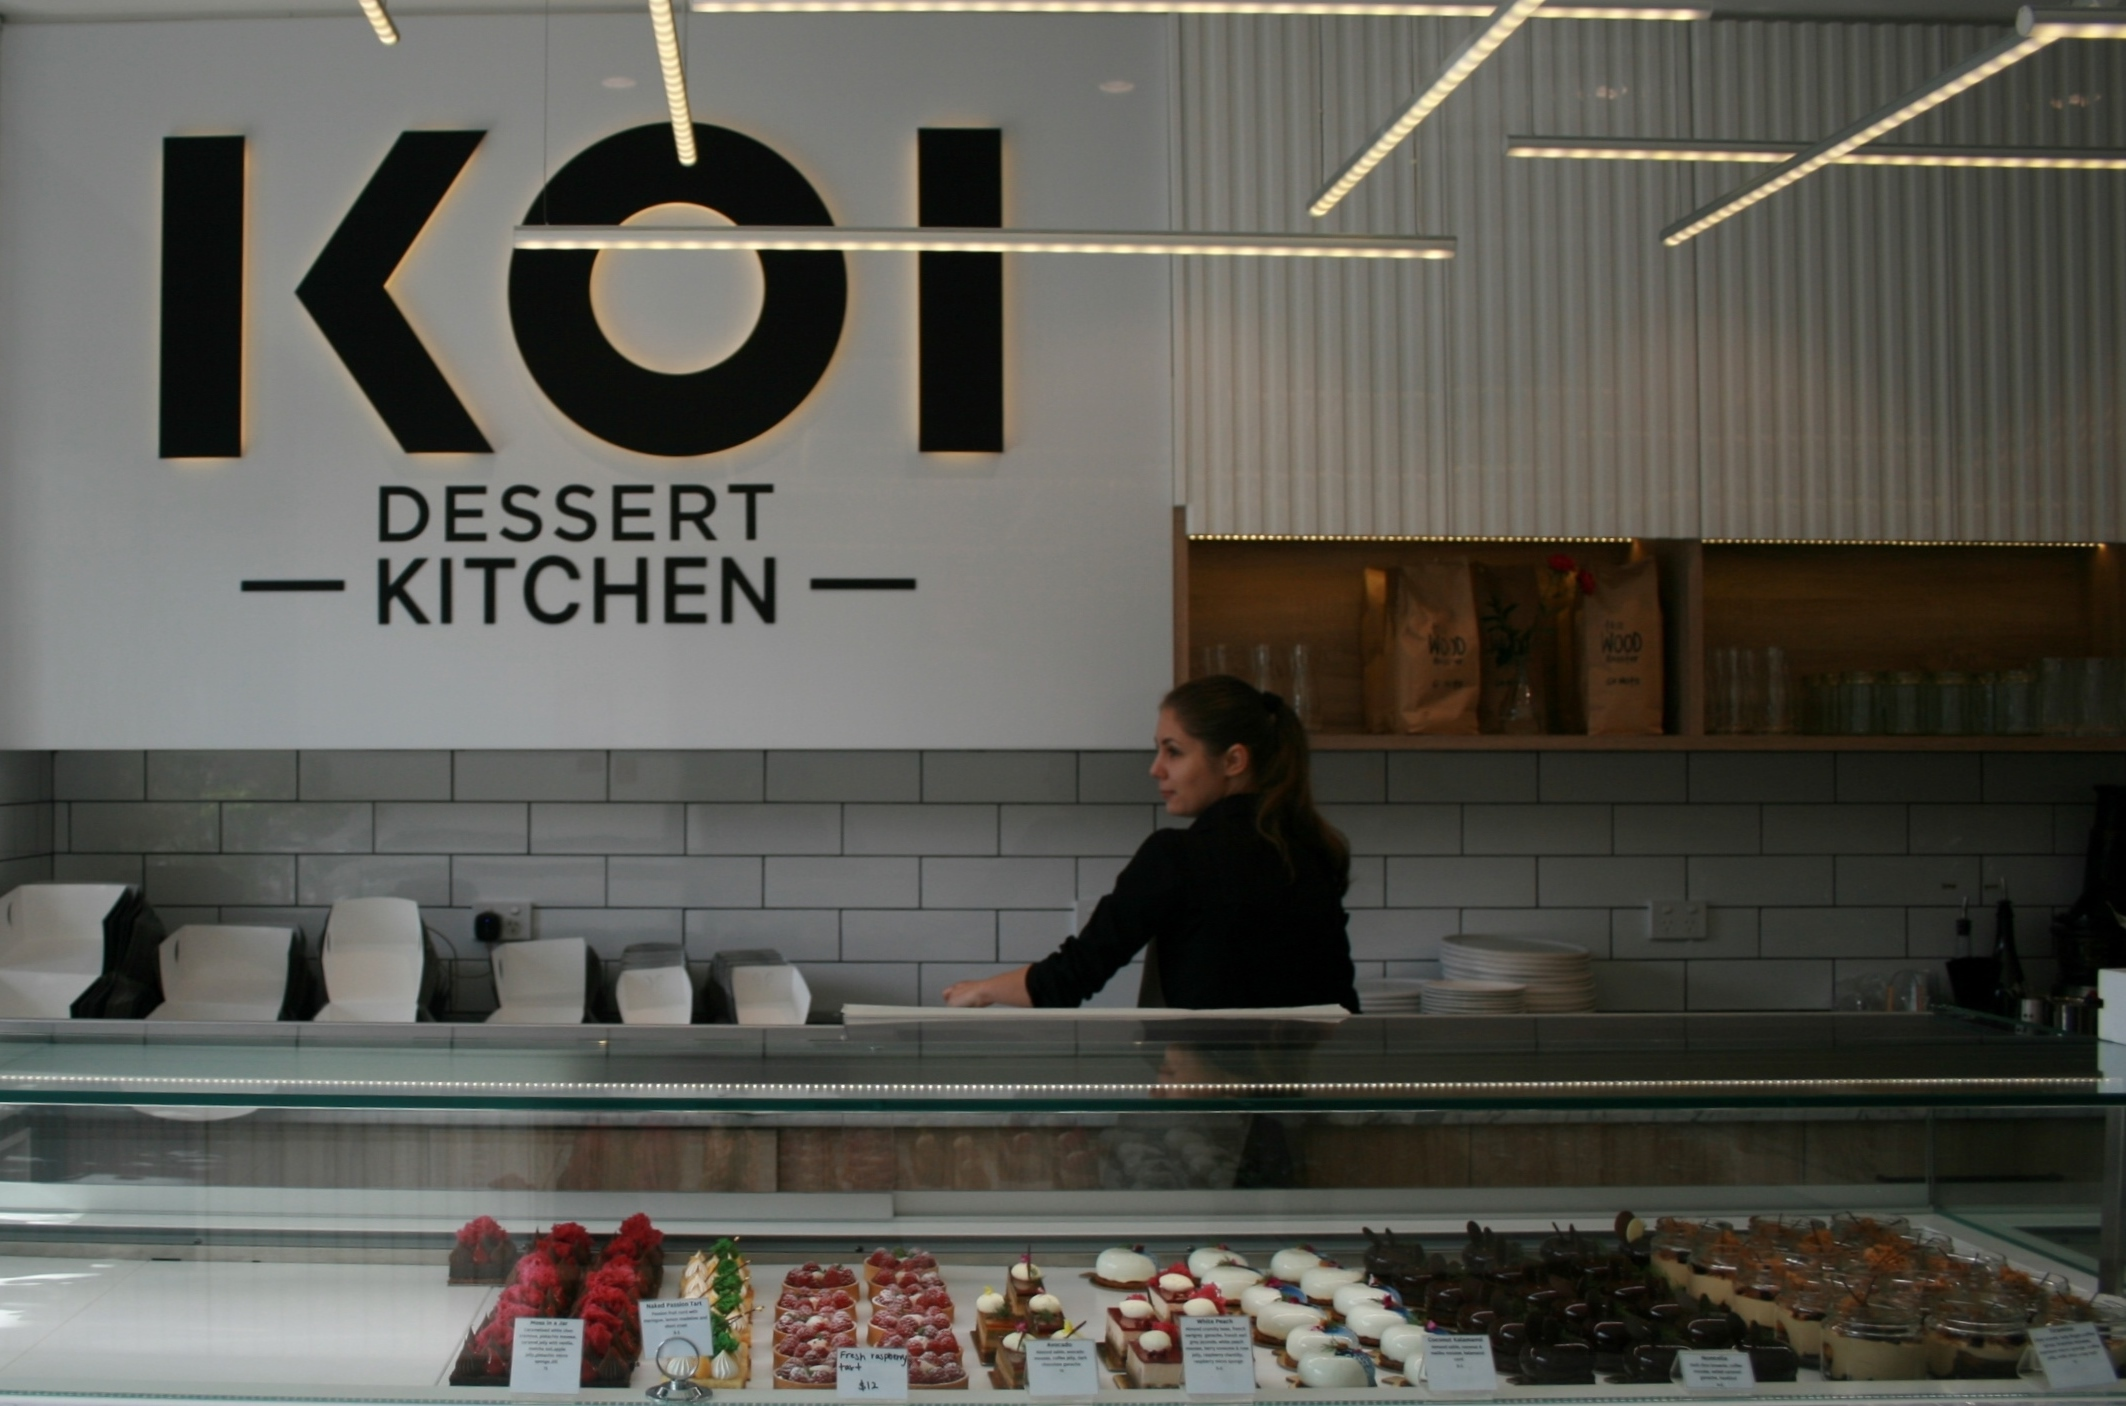 Dessert Kitchen Melbourne Koi Dessert Kitchen Ryde Sydney